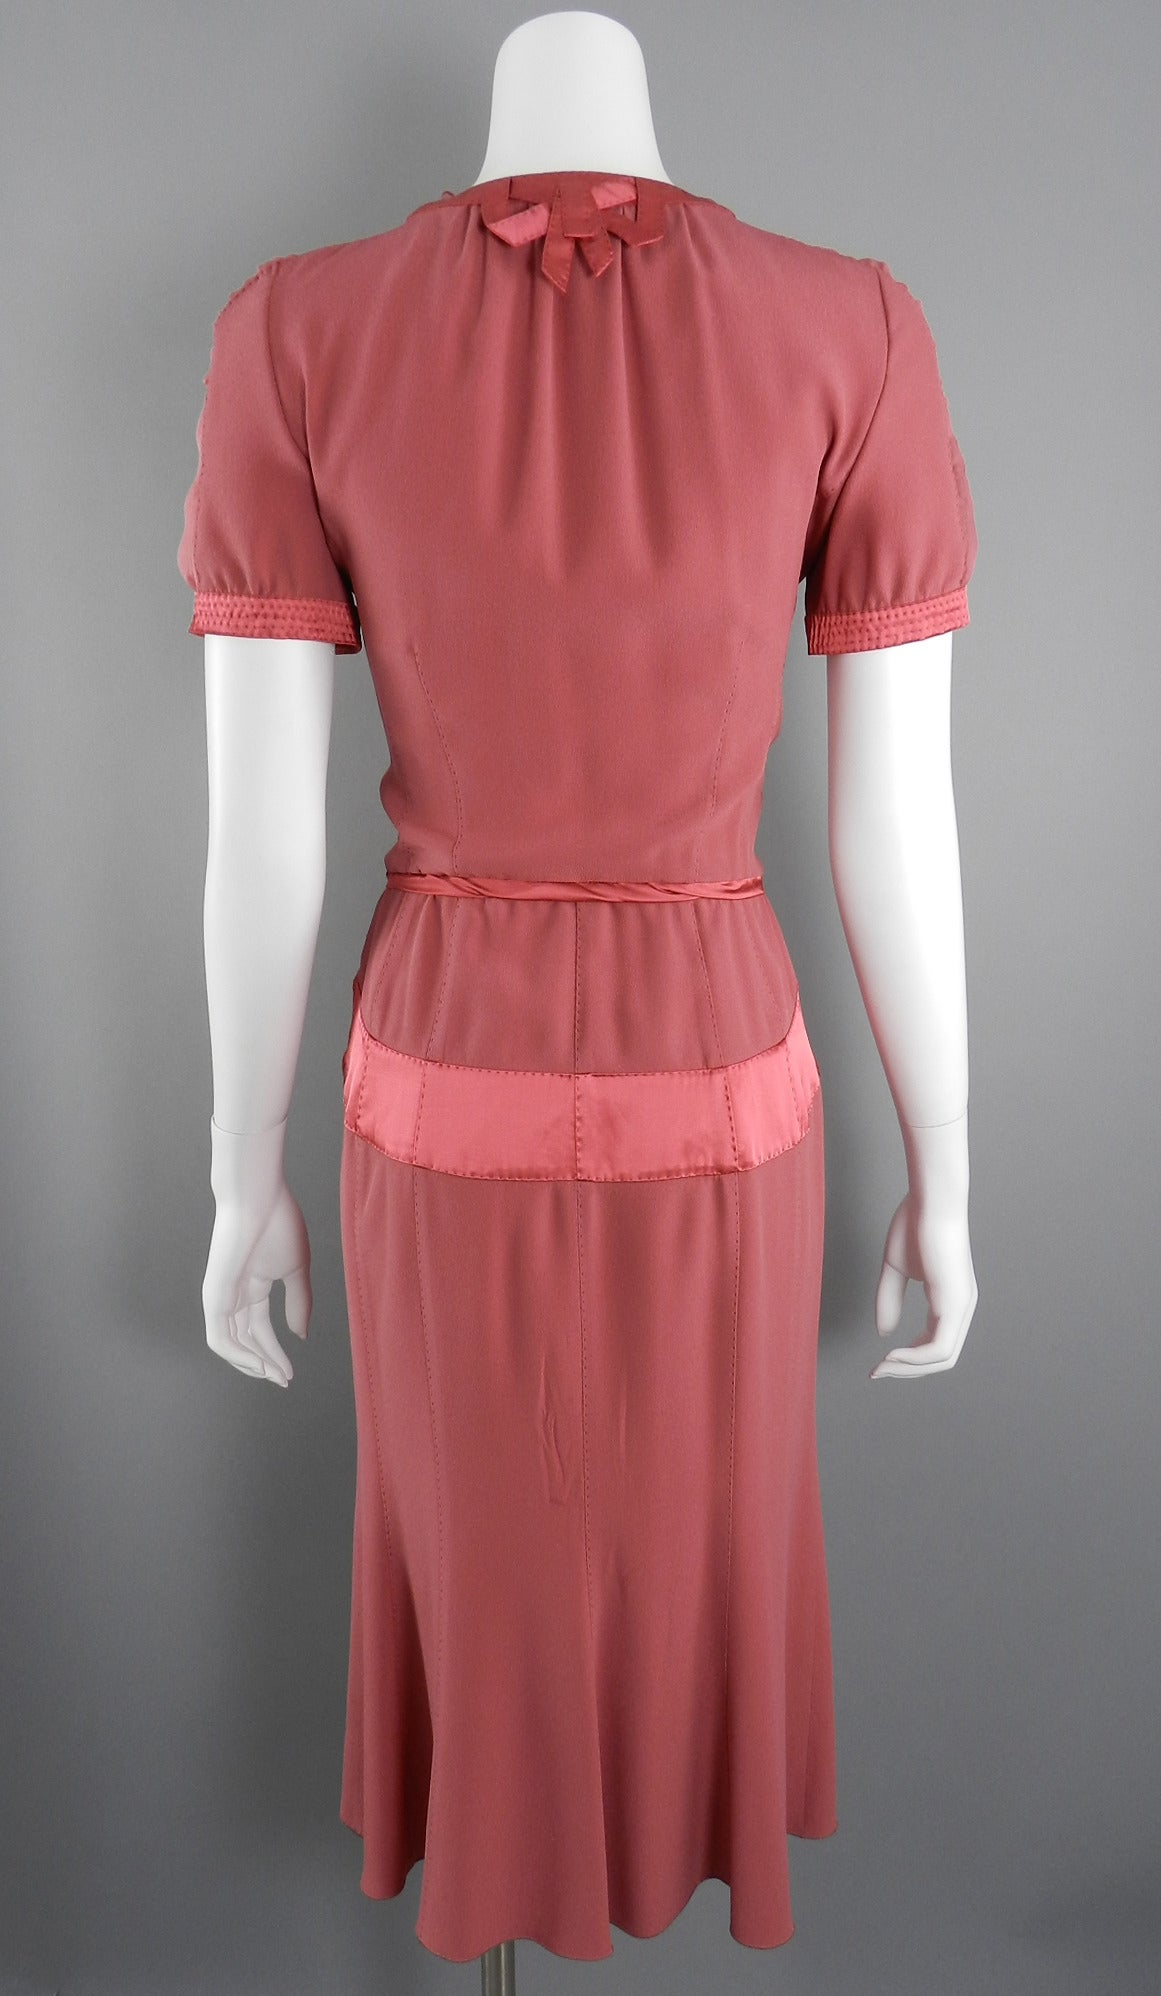 Louis Vuitton Rose Color 1930's Vintage Style Dress 4